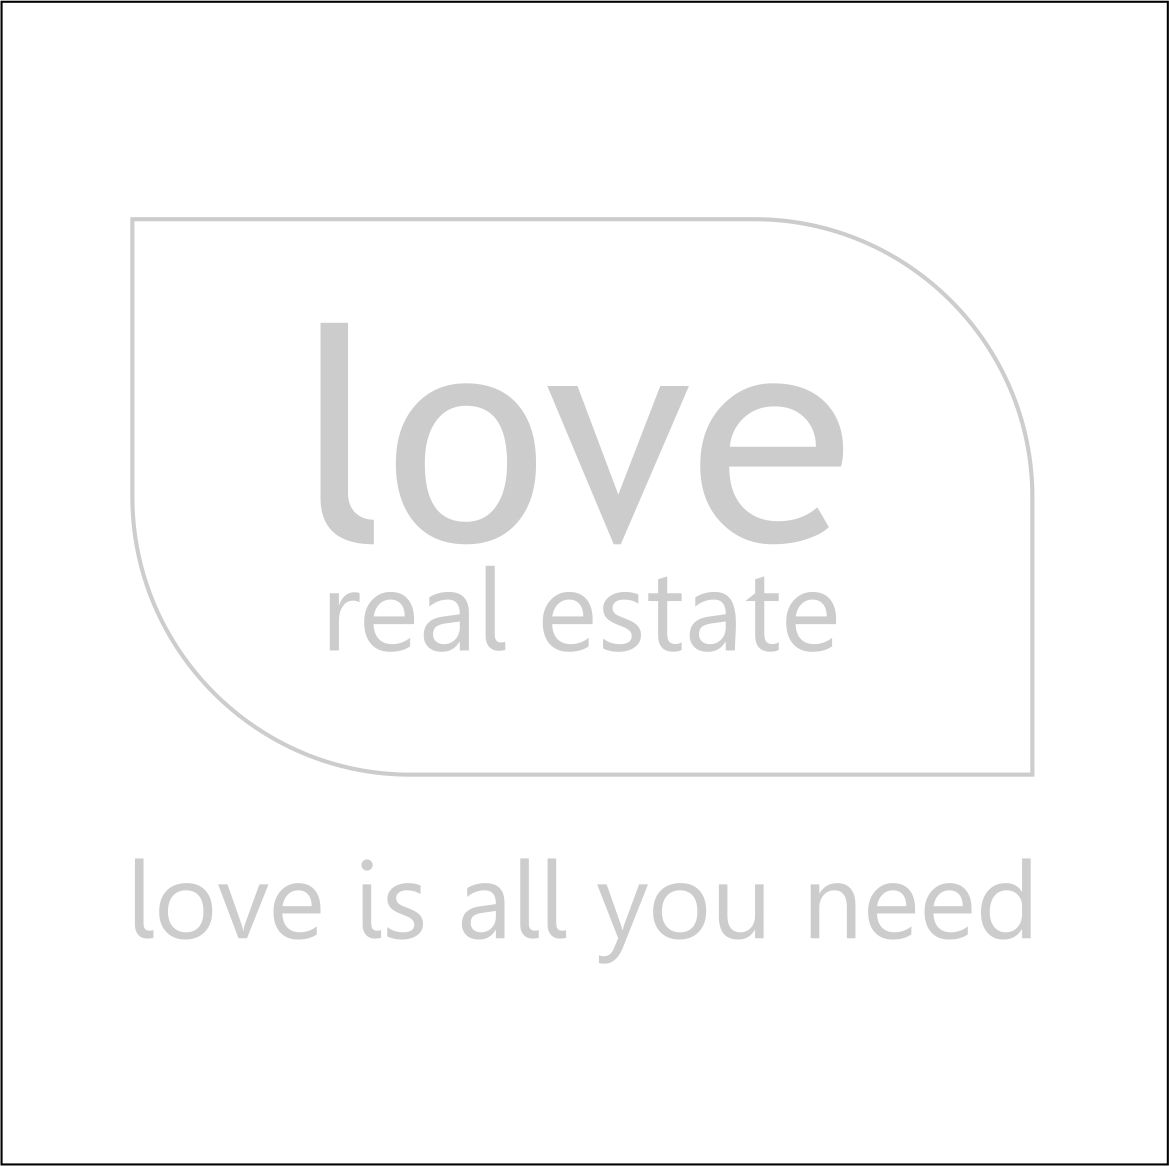 love real estate